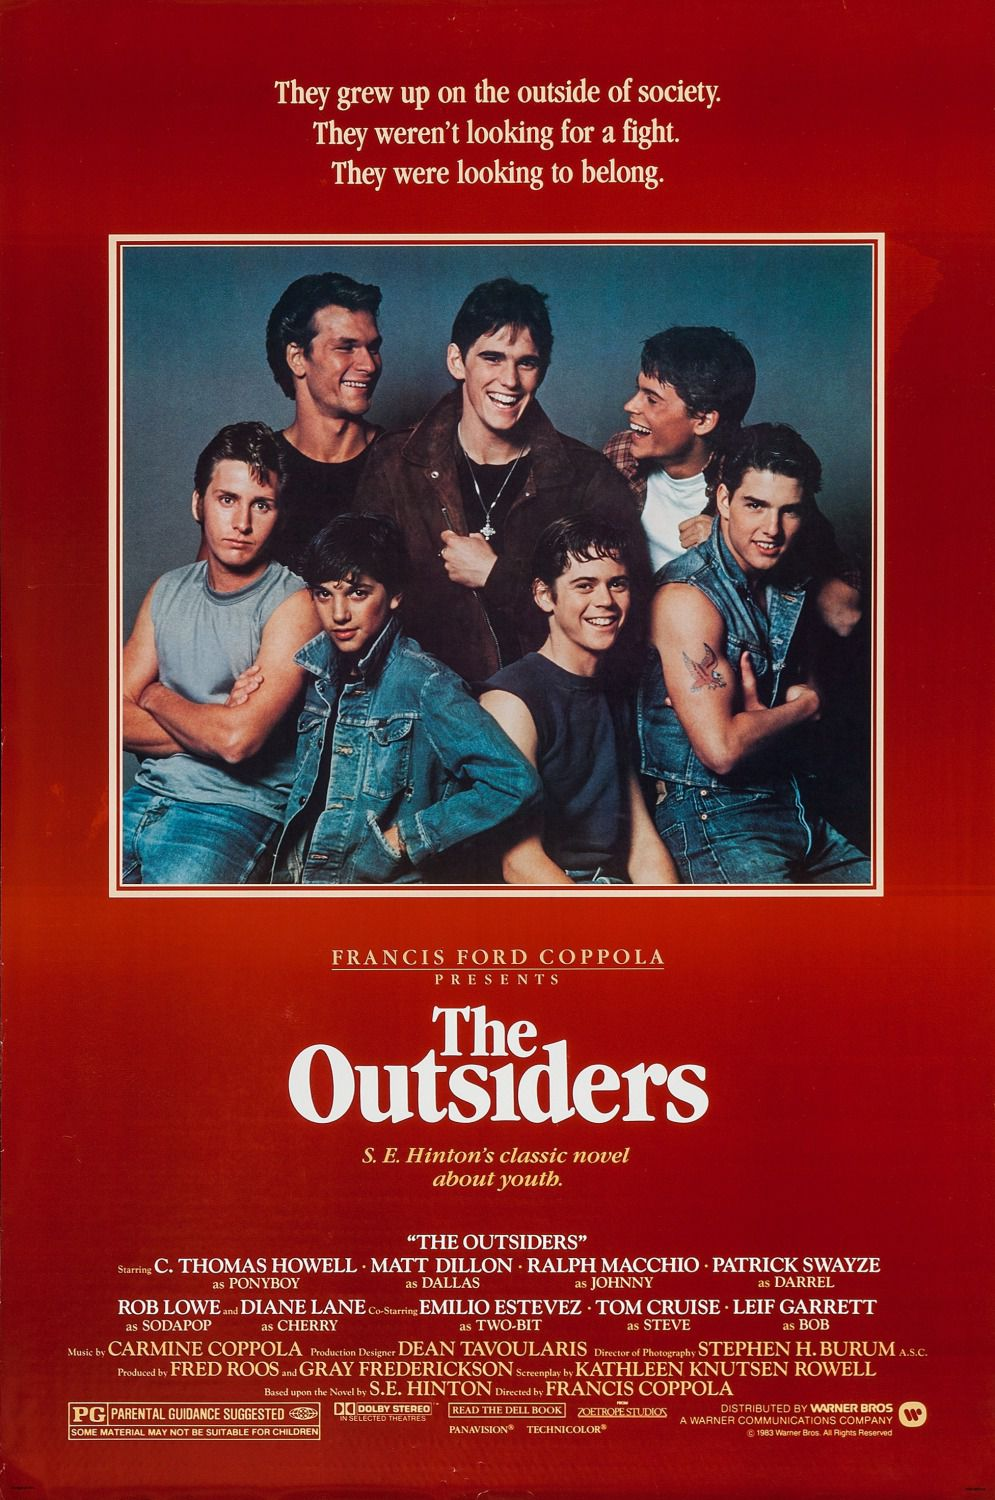 The Outsiders - They grew up on the outside of society. They weren't looking for a fight. They were looking to belong. - C. Thomas Howell - Matt Dillon - Ralph Macchio - Patrick Swayze - Rob Lowe - Diane Lane - Emilio Estevez - Tom Cruise - Leif Garrett - Francis Ford Coppola 1983 film poster